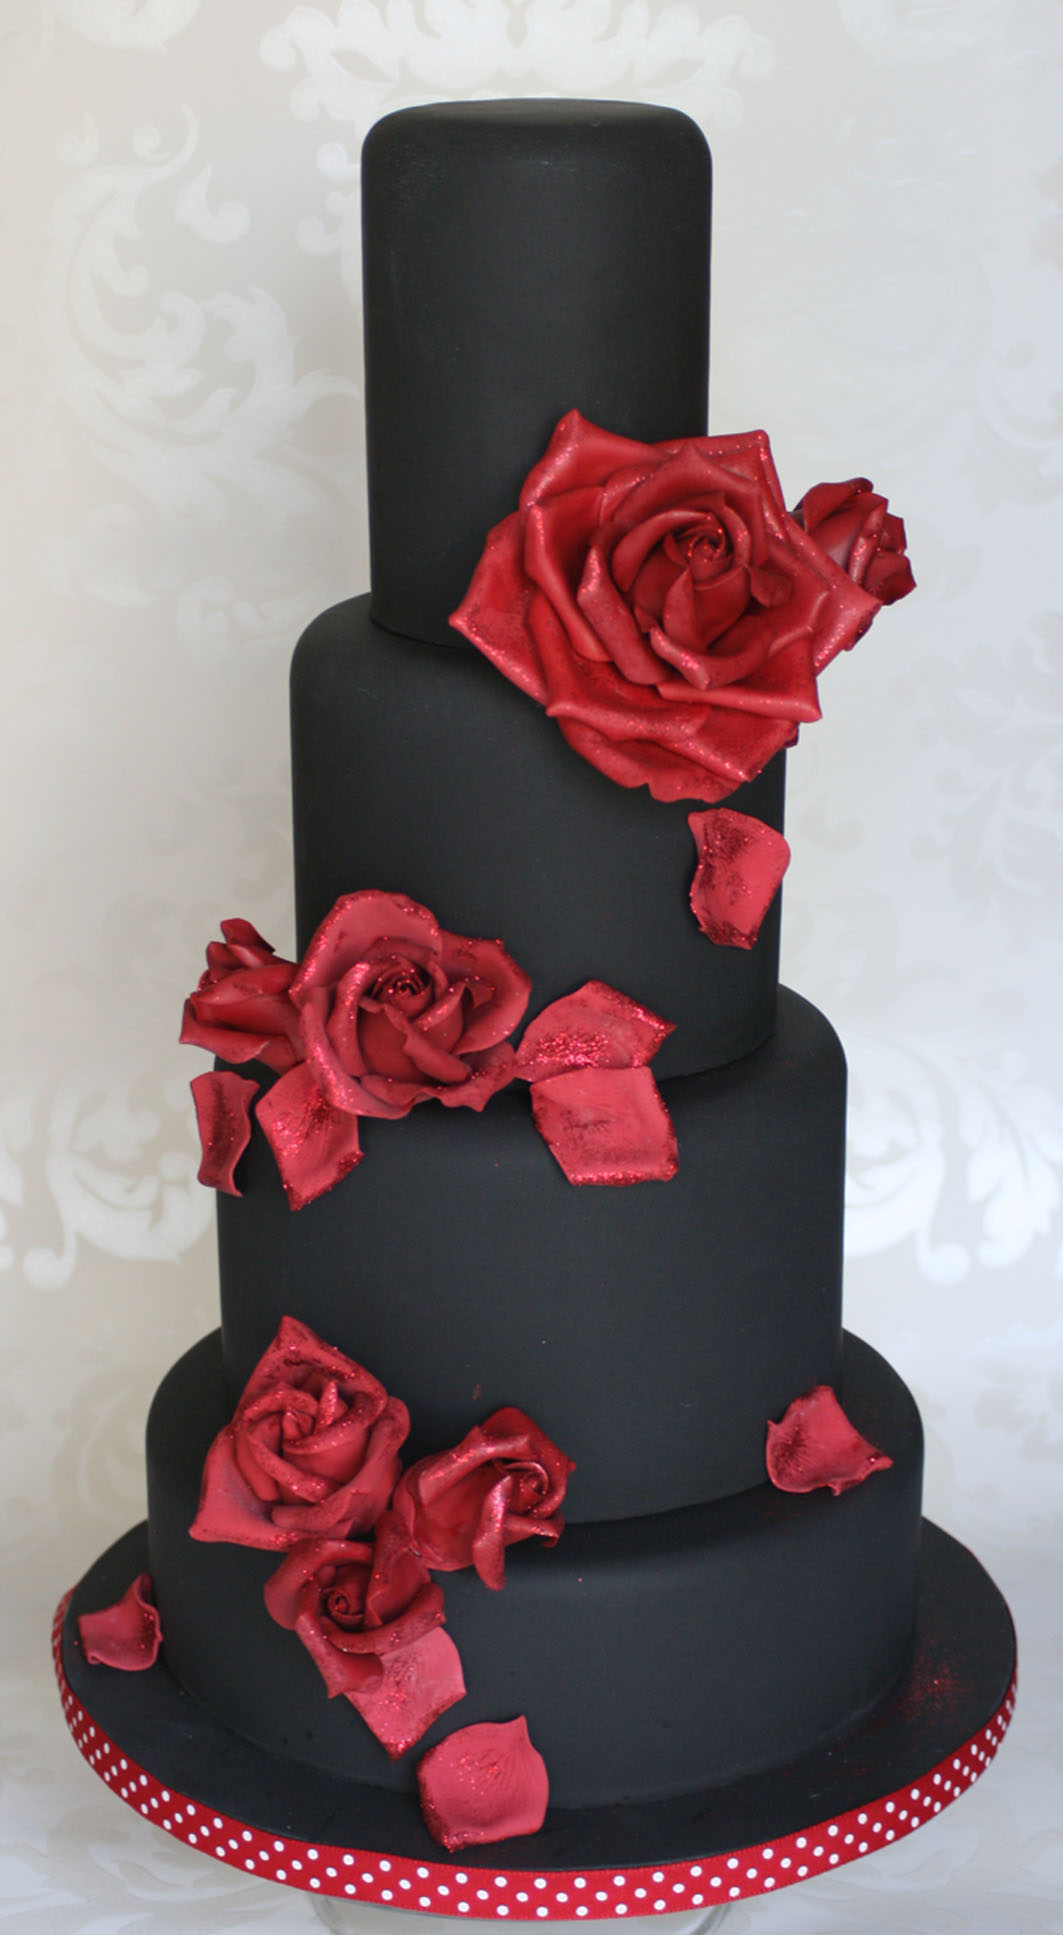 Black wedding cake with red roses